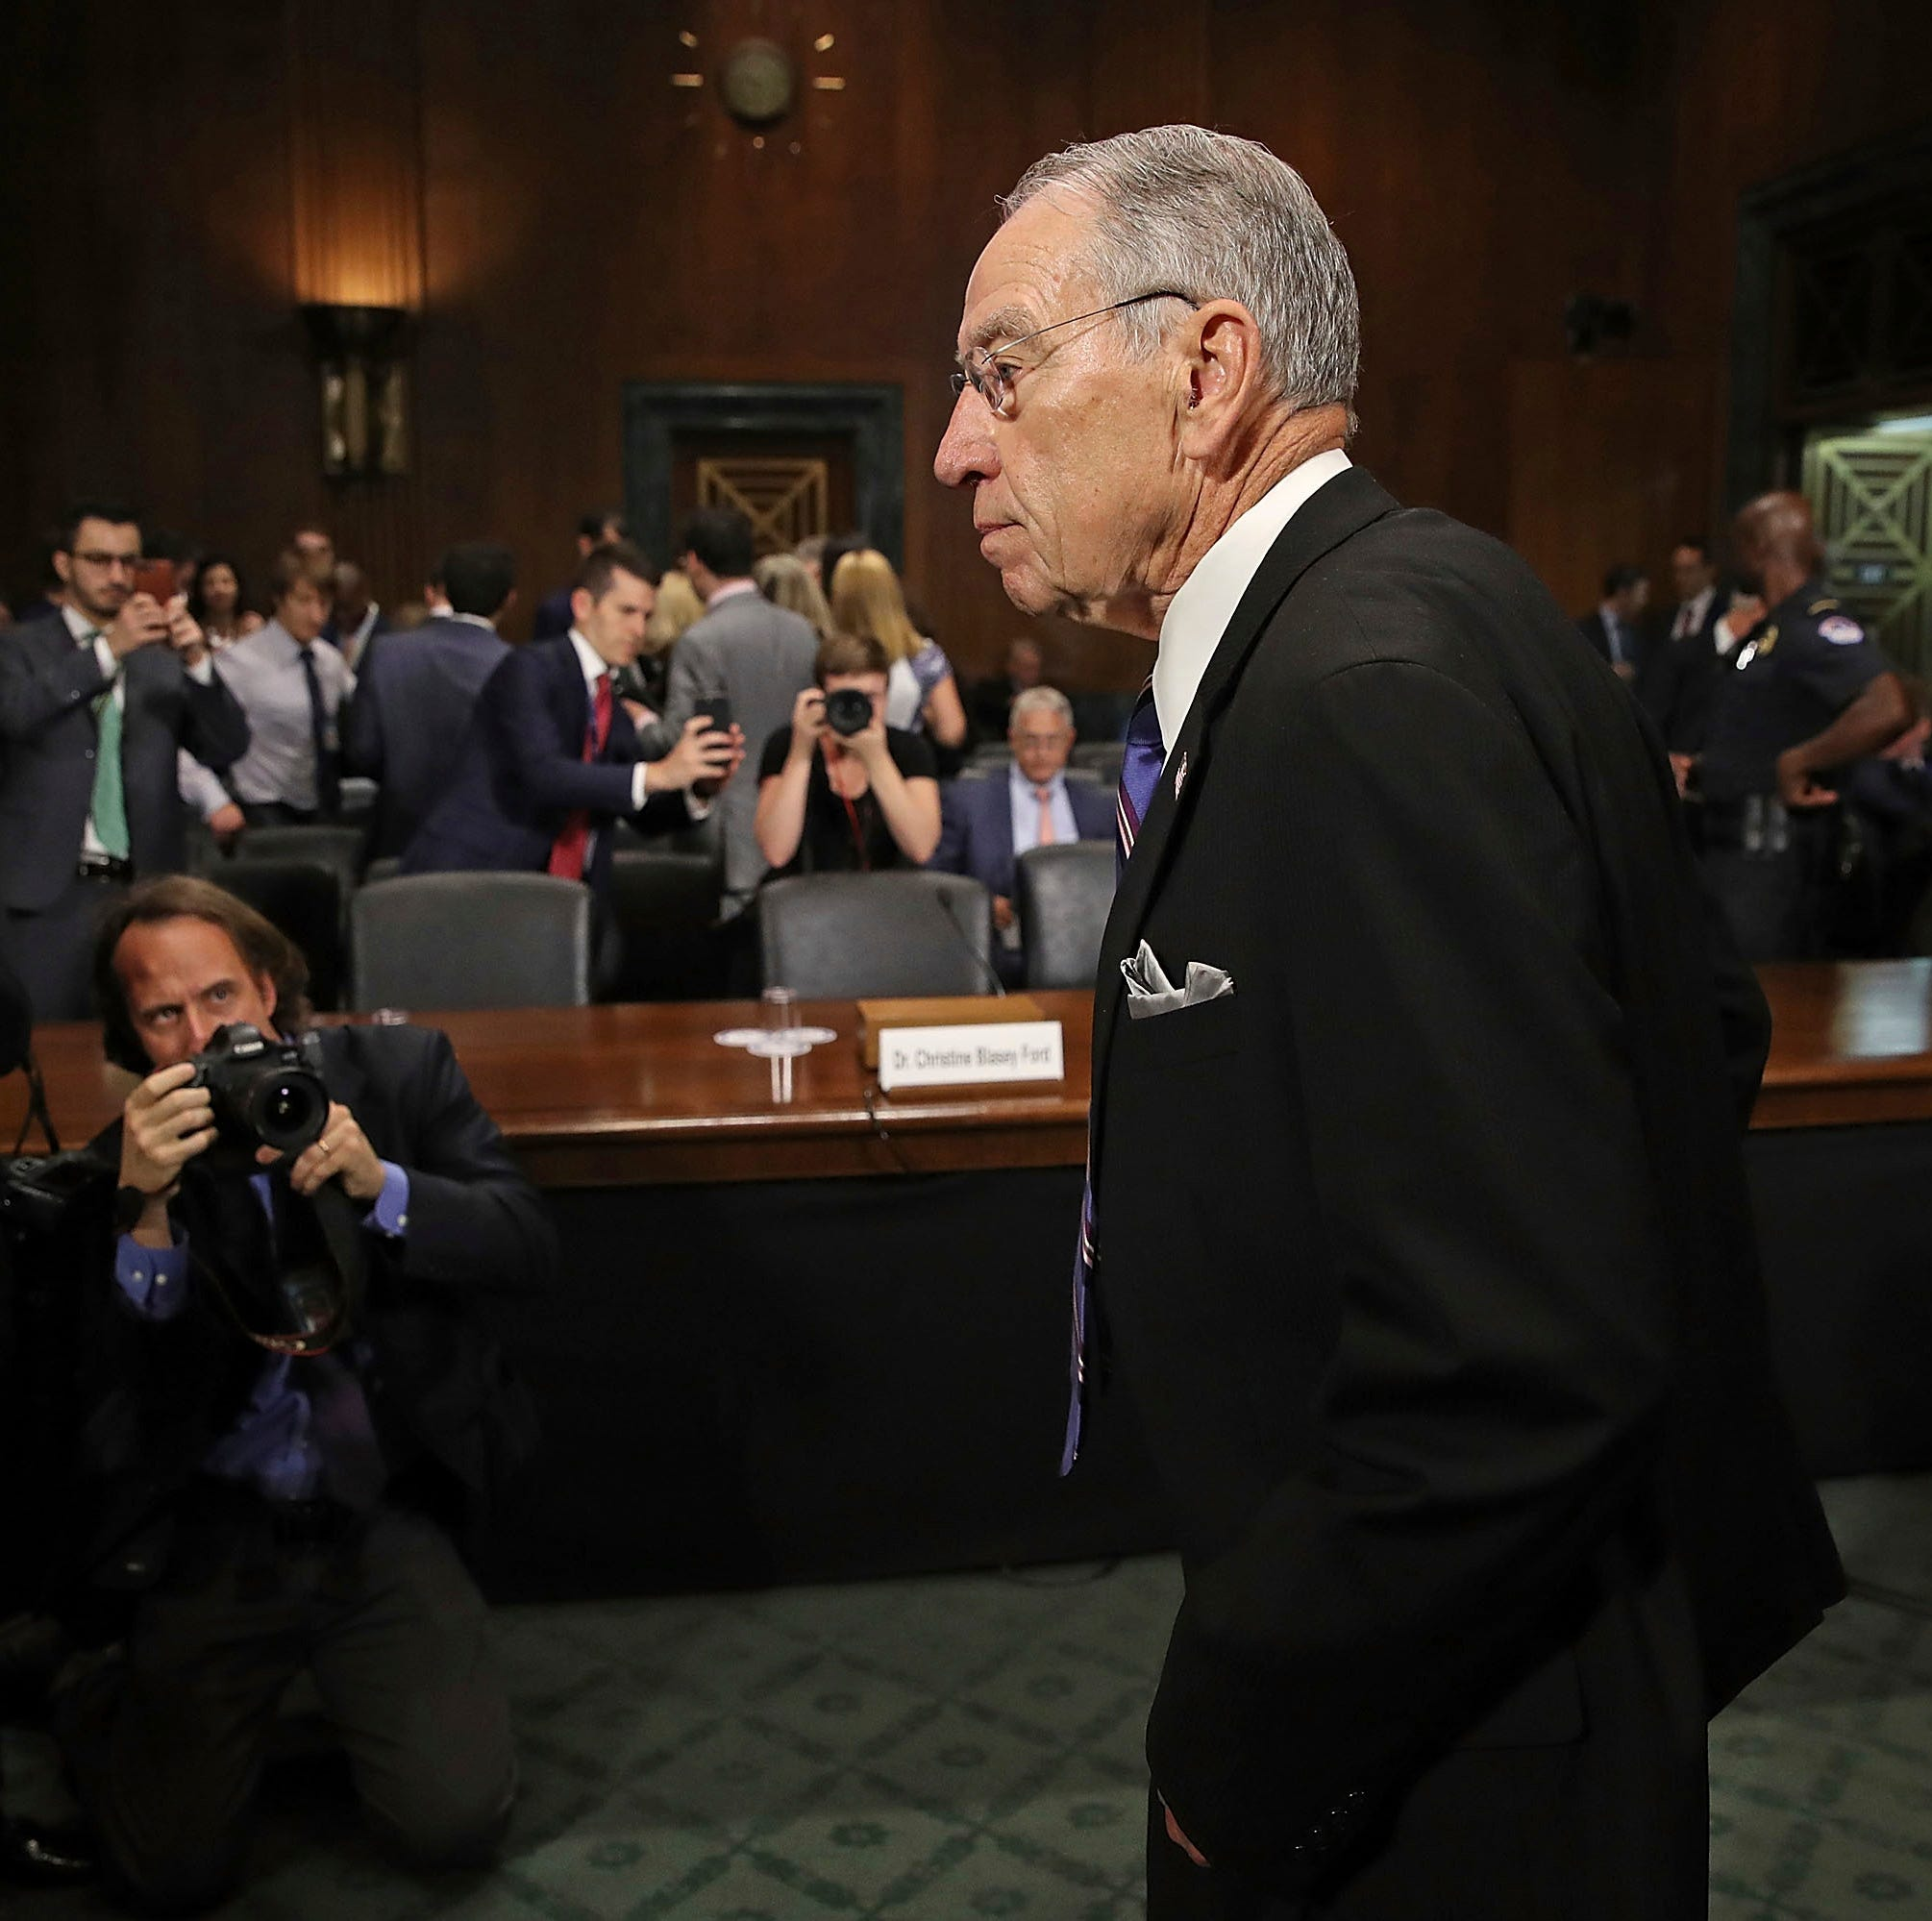 Senate Judiciary Committee Chairman Chuck Grassley, R-Iowa, arrives at the Senate Judiciary Committee hearing, Thursday, Sept. 28, 2018 in Washington.  The Senate Judiciary Committee will hear from Supreme Court nominee Brett Kavanaugh and Christine Blasey Ford, the woman who says he sexually assaulted her. (Win McNamee/Pool Photo via AP)